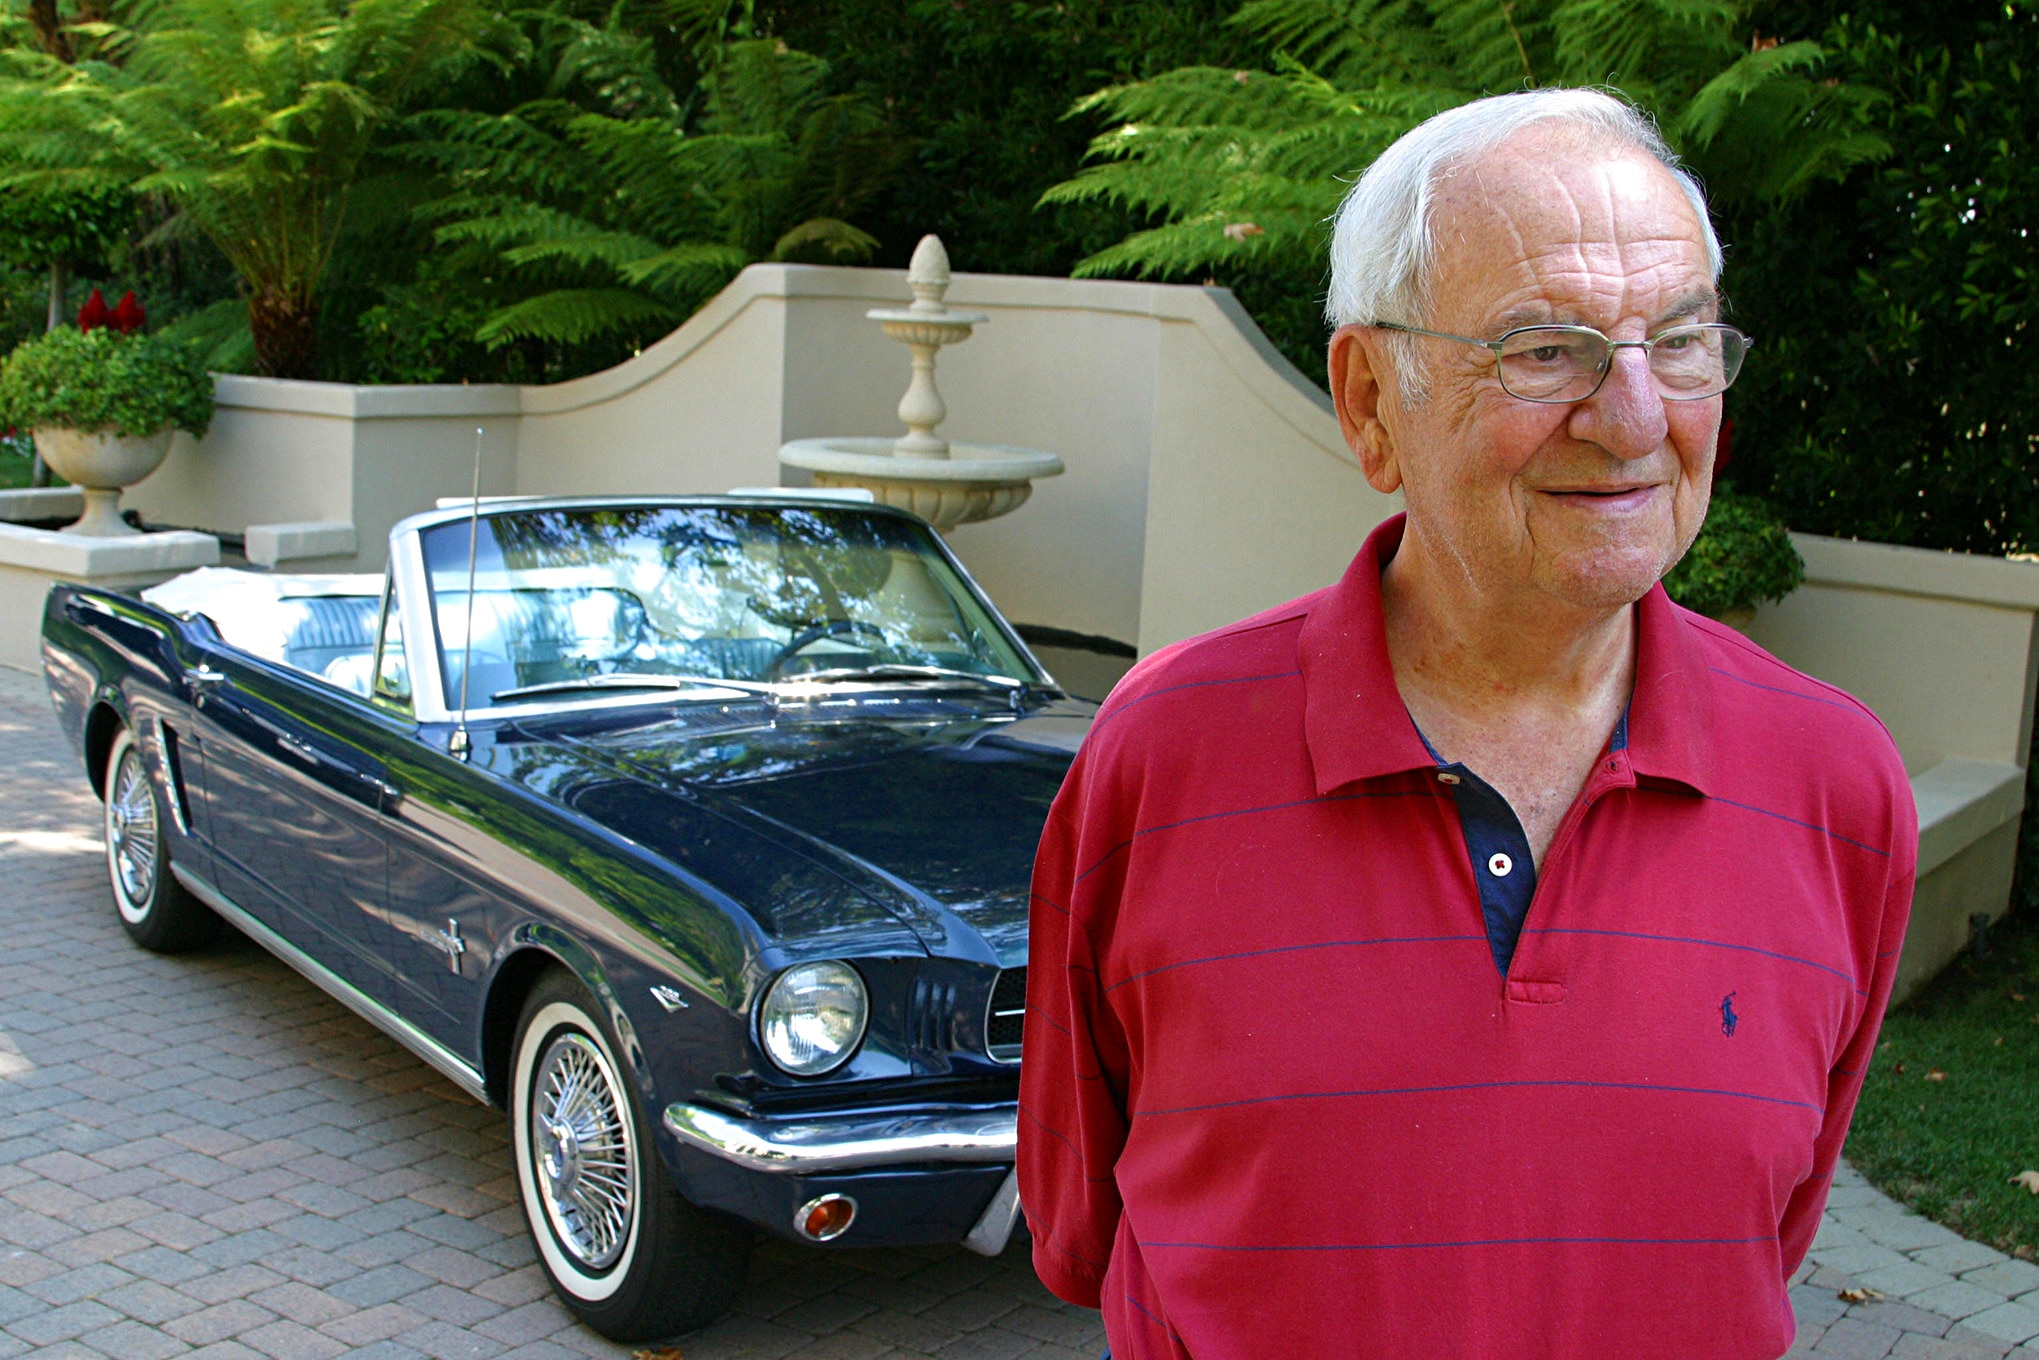 001 Lee Iacocca Remembering This American Icon 1 2